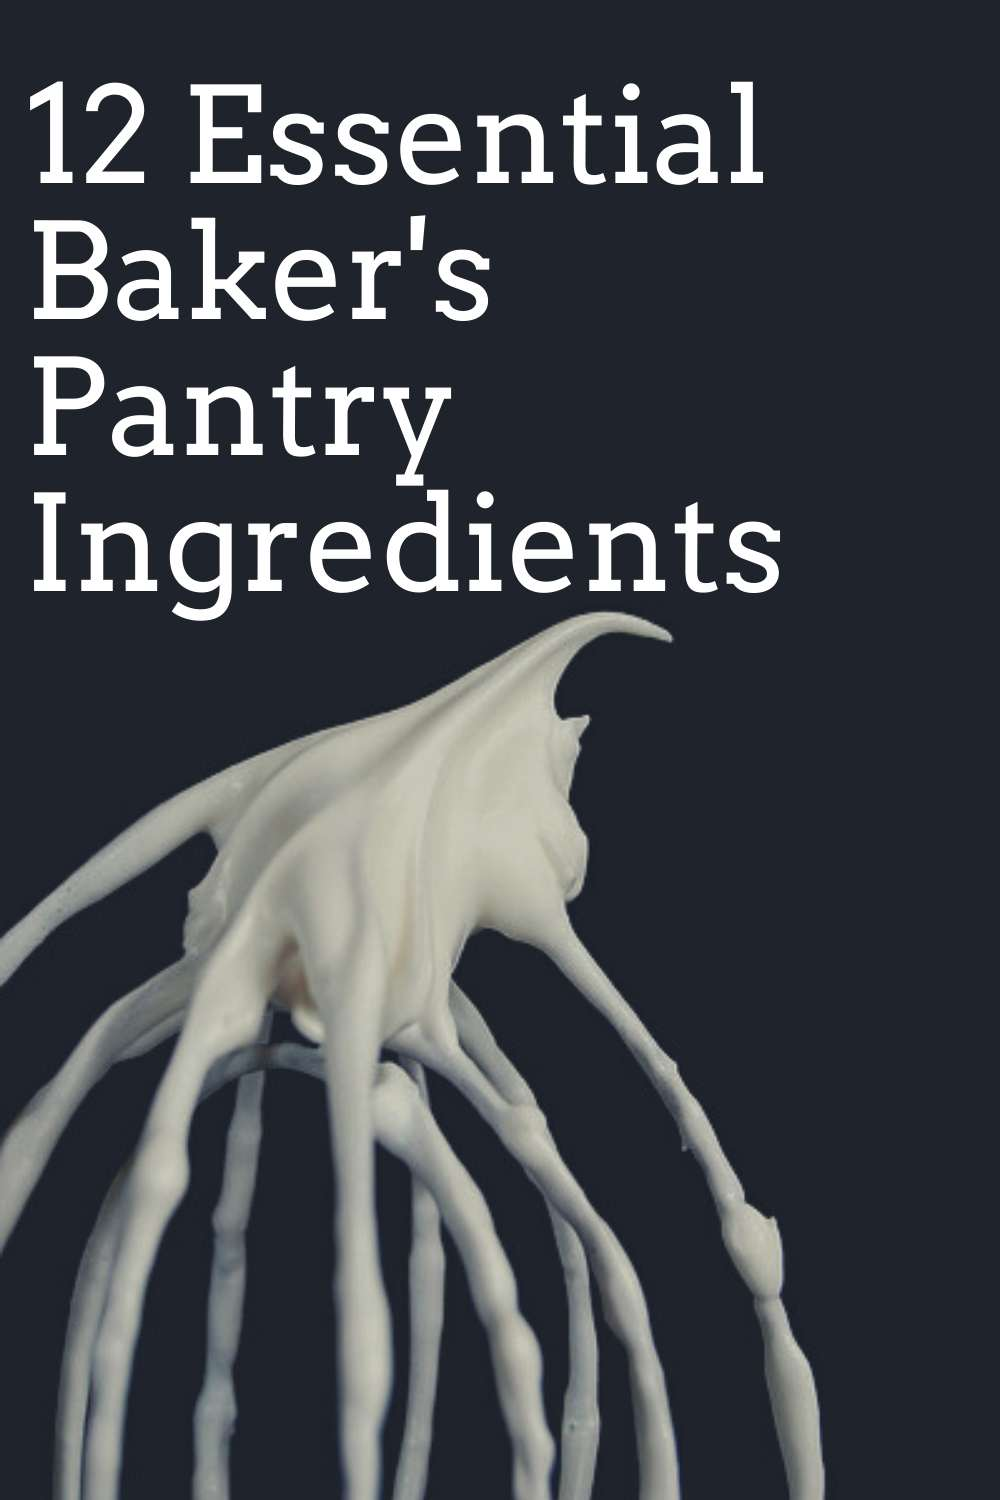 12-Essential-Bakers-Pantry-Ingredien